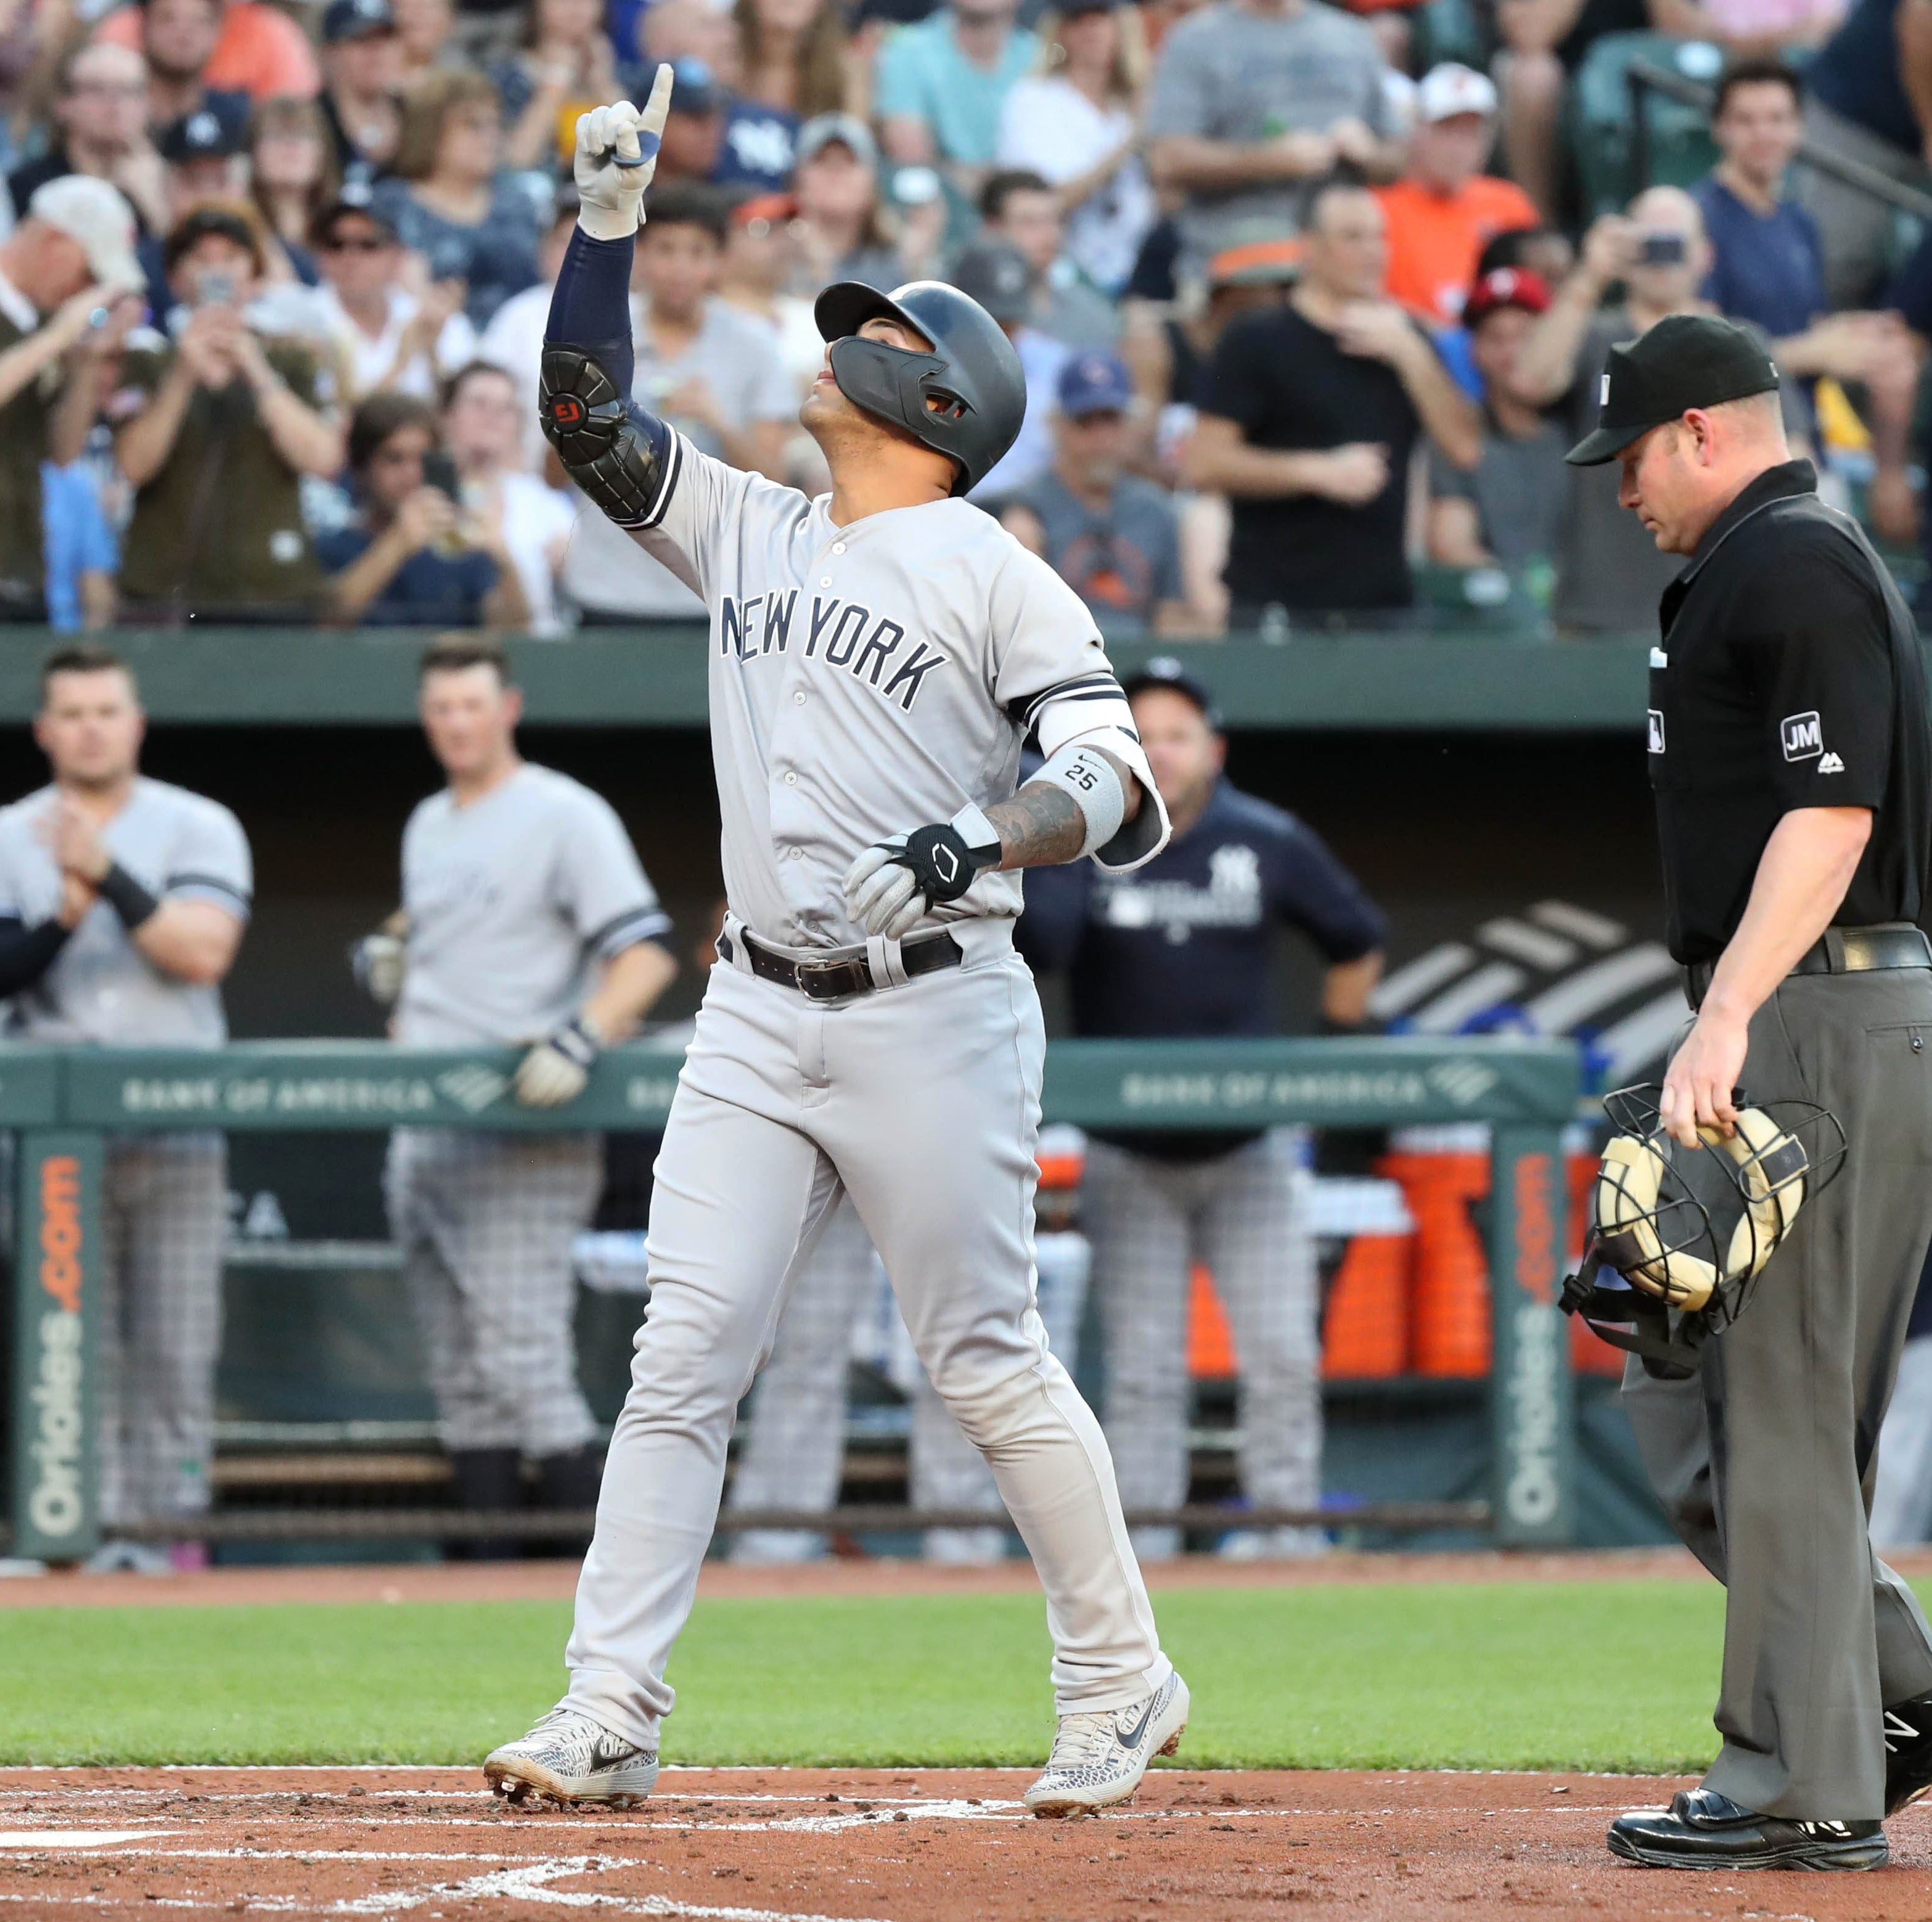 Gary Sanchez, Gleyber Torres power Yankees to comeback win over hapless Orioles